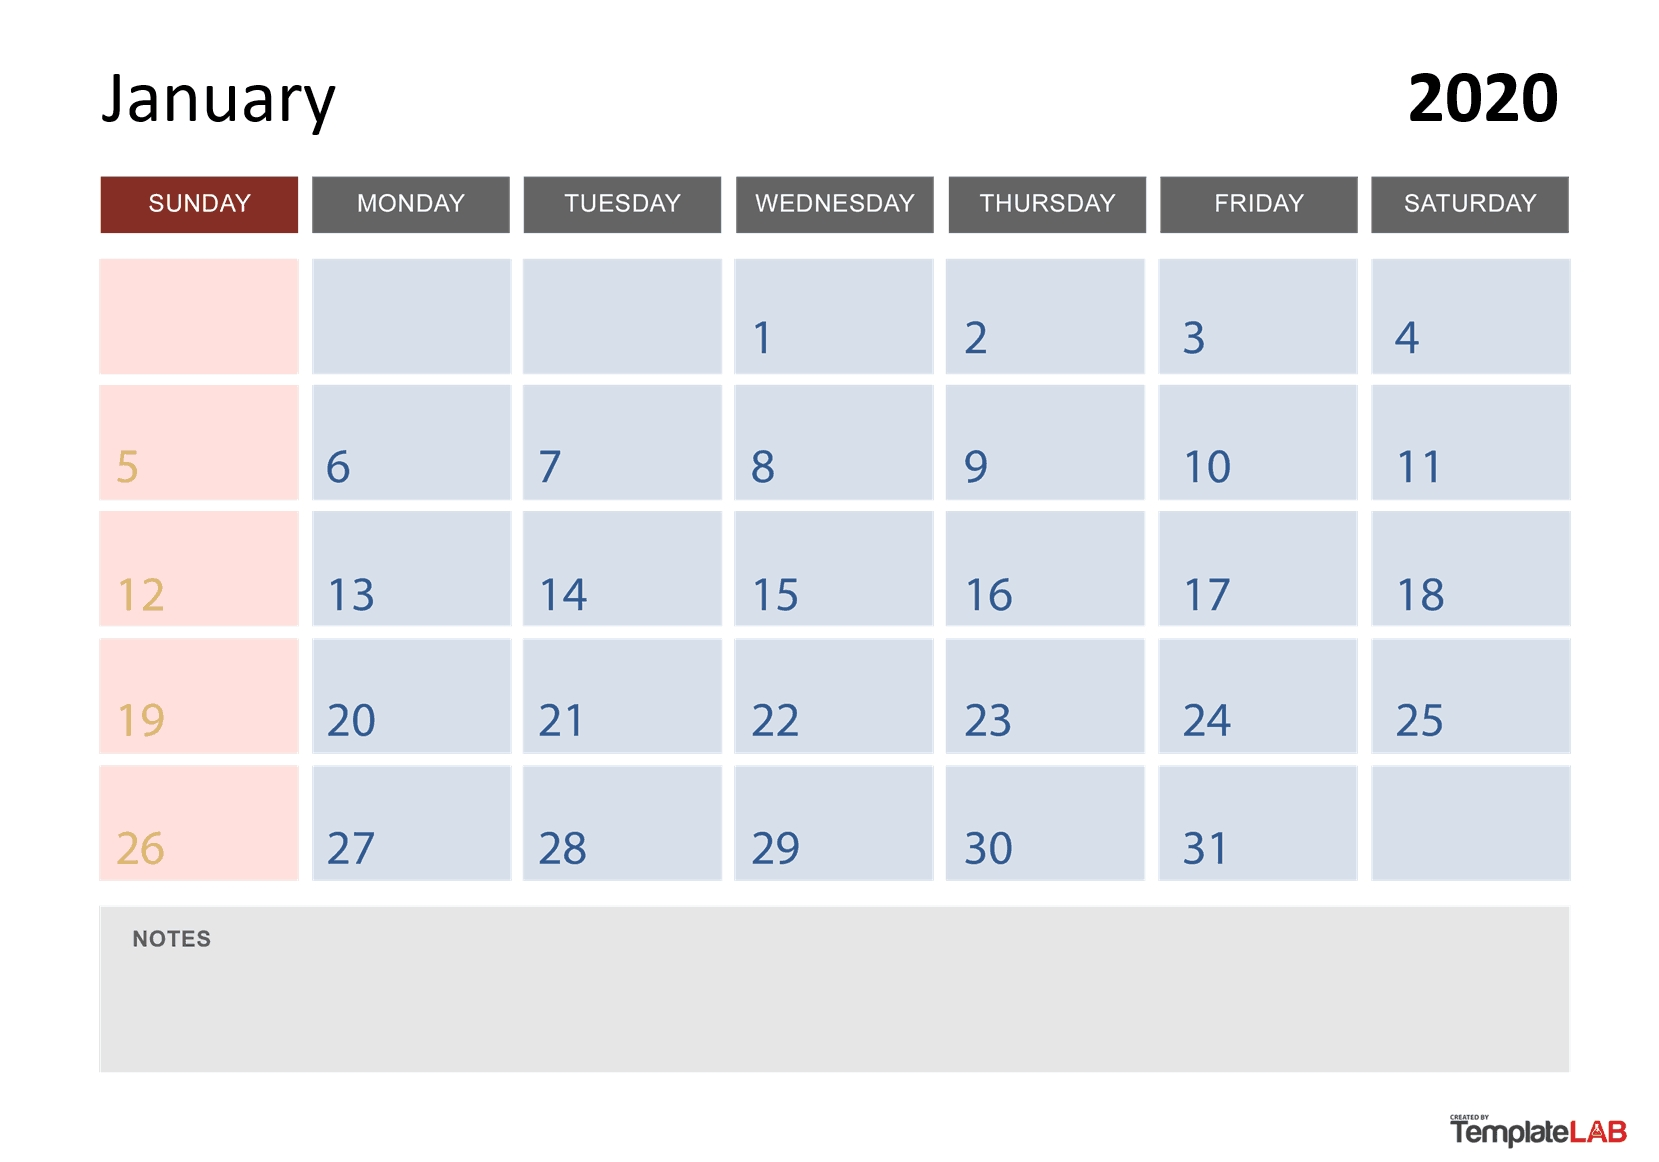 2020 Printable Calendars [Monthly, With Holidays, Yearly] ᐅ with regard to 2020 Google Sheets Calendar